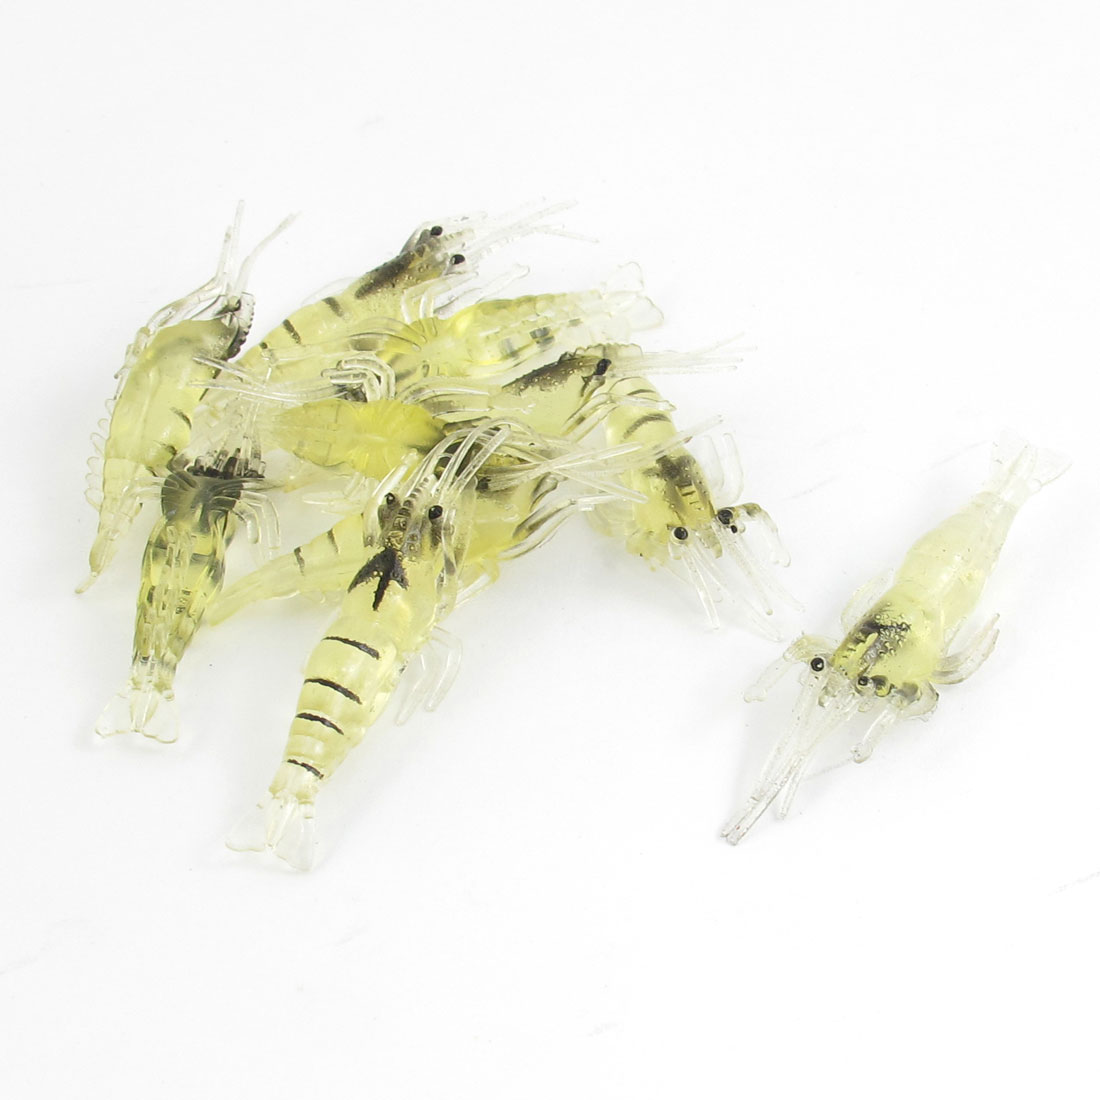 10 Pcs Manmade Fish Bait Soft Silicone Shrimp Lobster Lure Clear Yellow Black